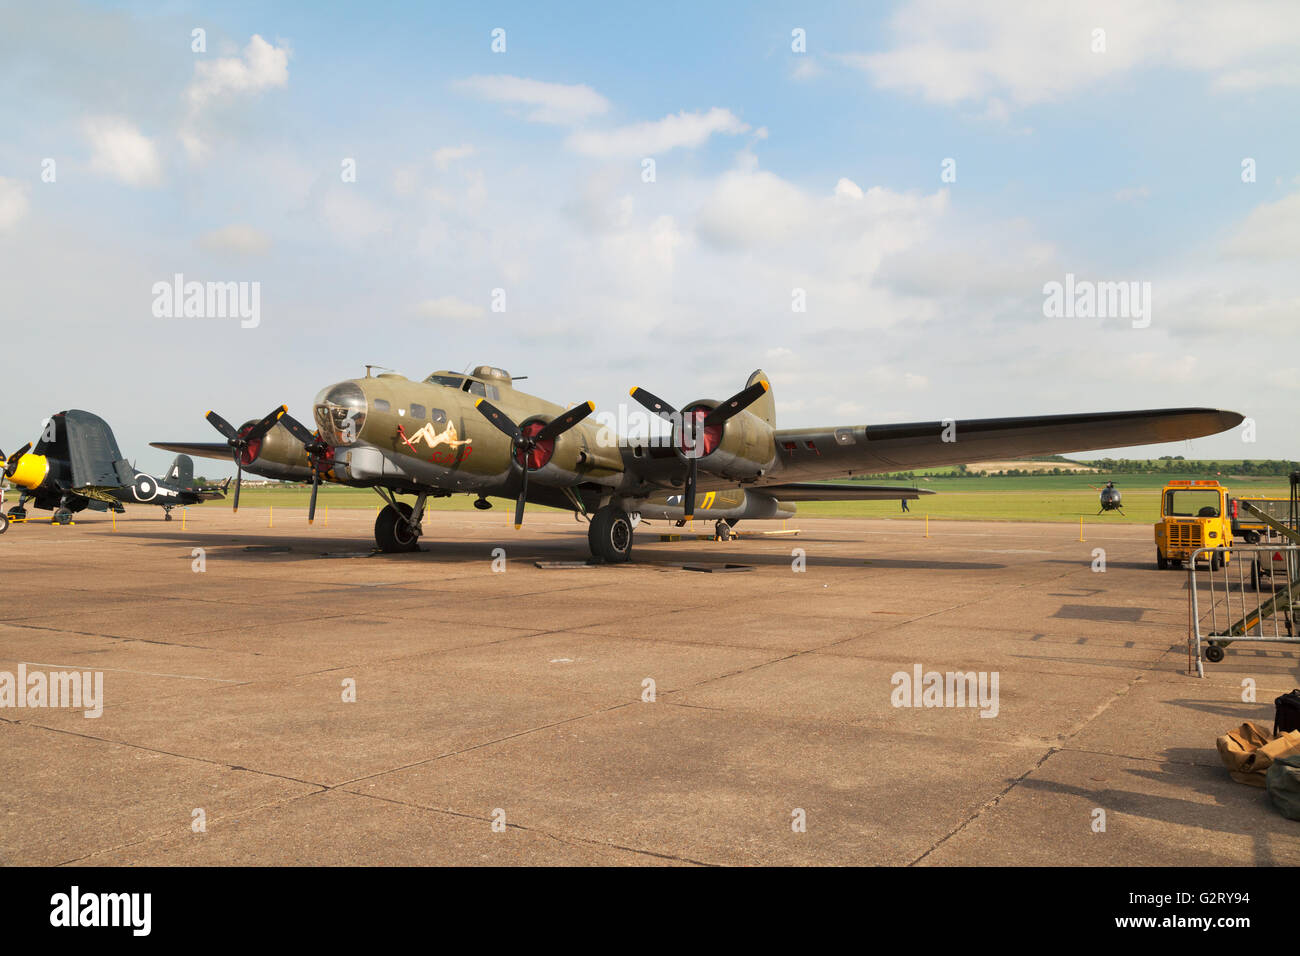 """Boeing B-17 Flying Fortress """" Sally B """" on the ground, Imperial war museum Duxford UK Stock Photo"""